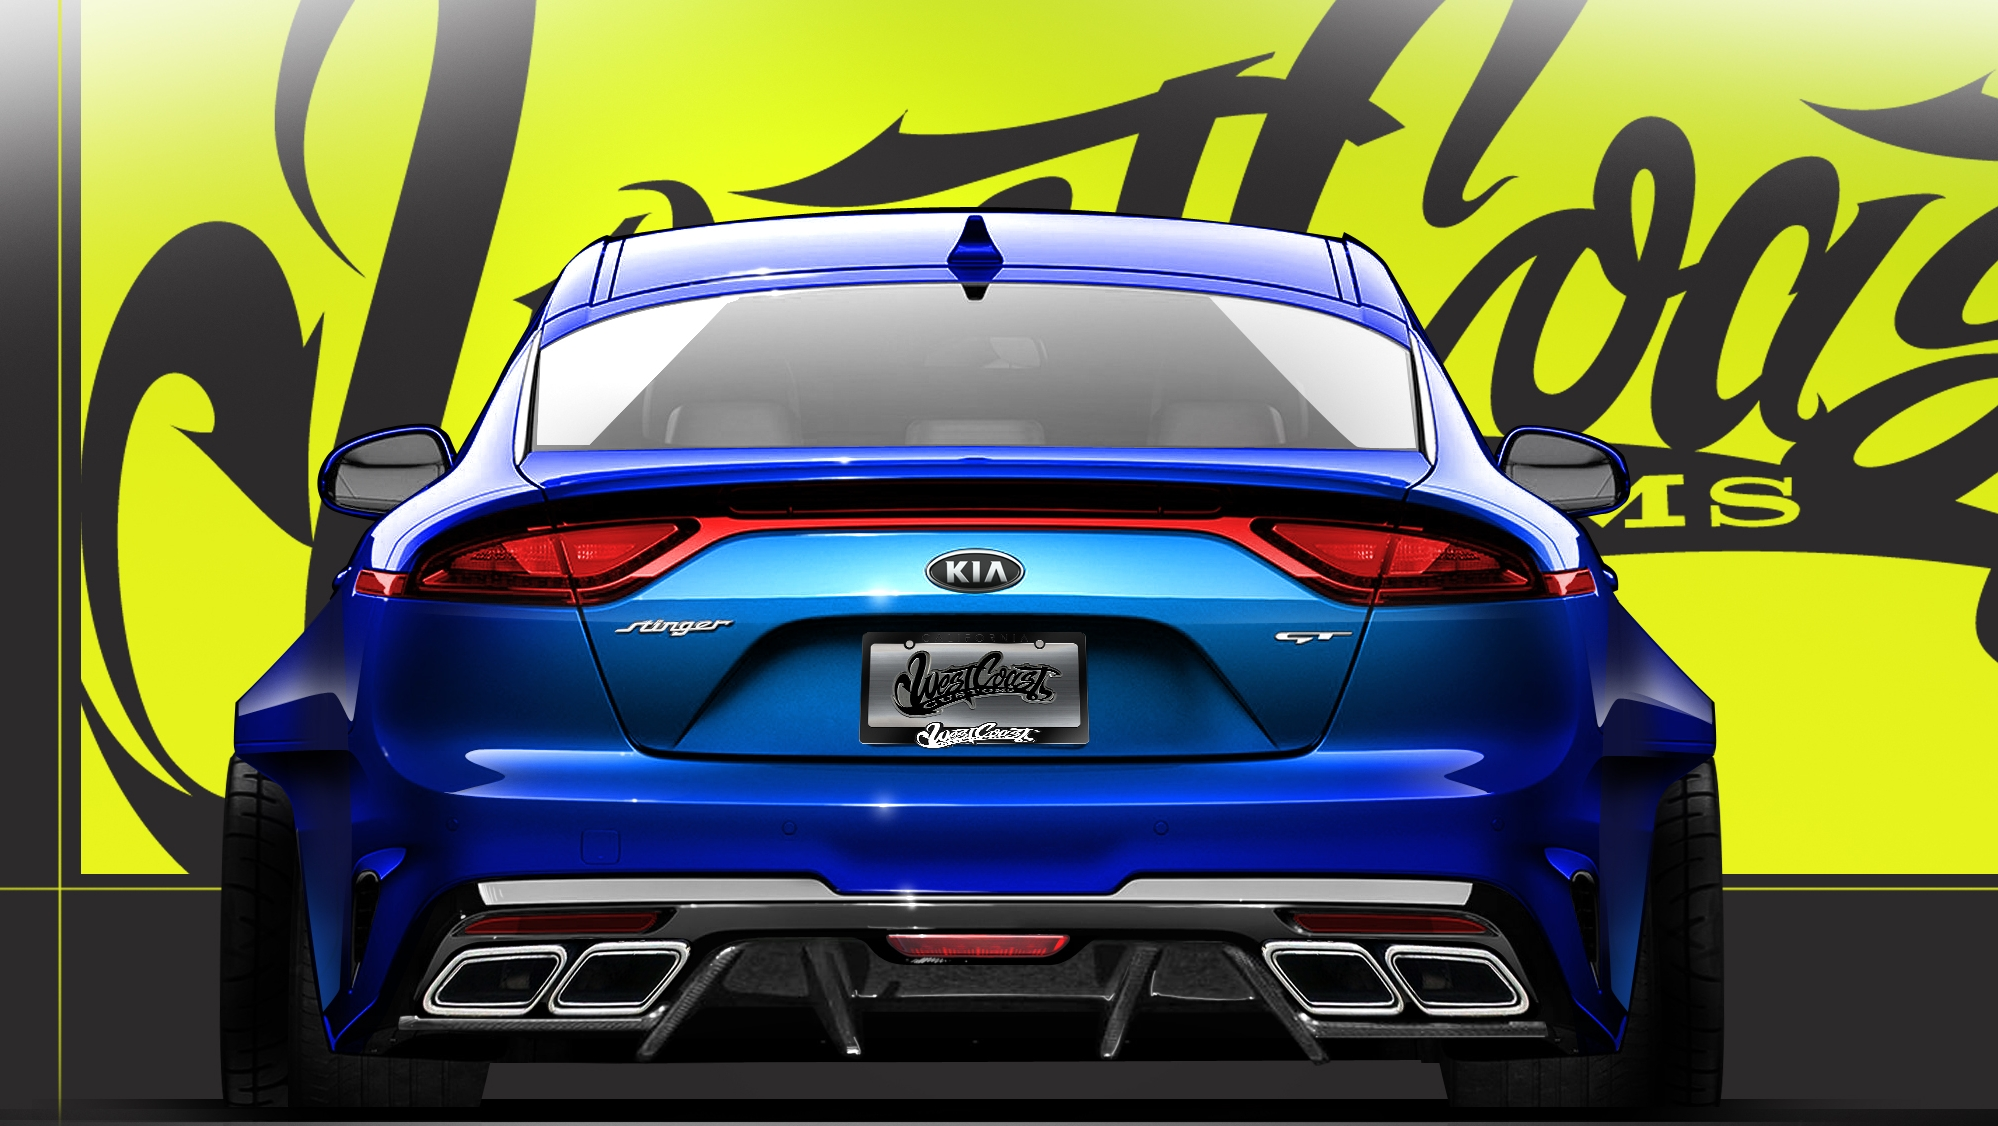 The Kia Stinger Gets Baptized For SEMA Pictures, Photos ...